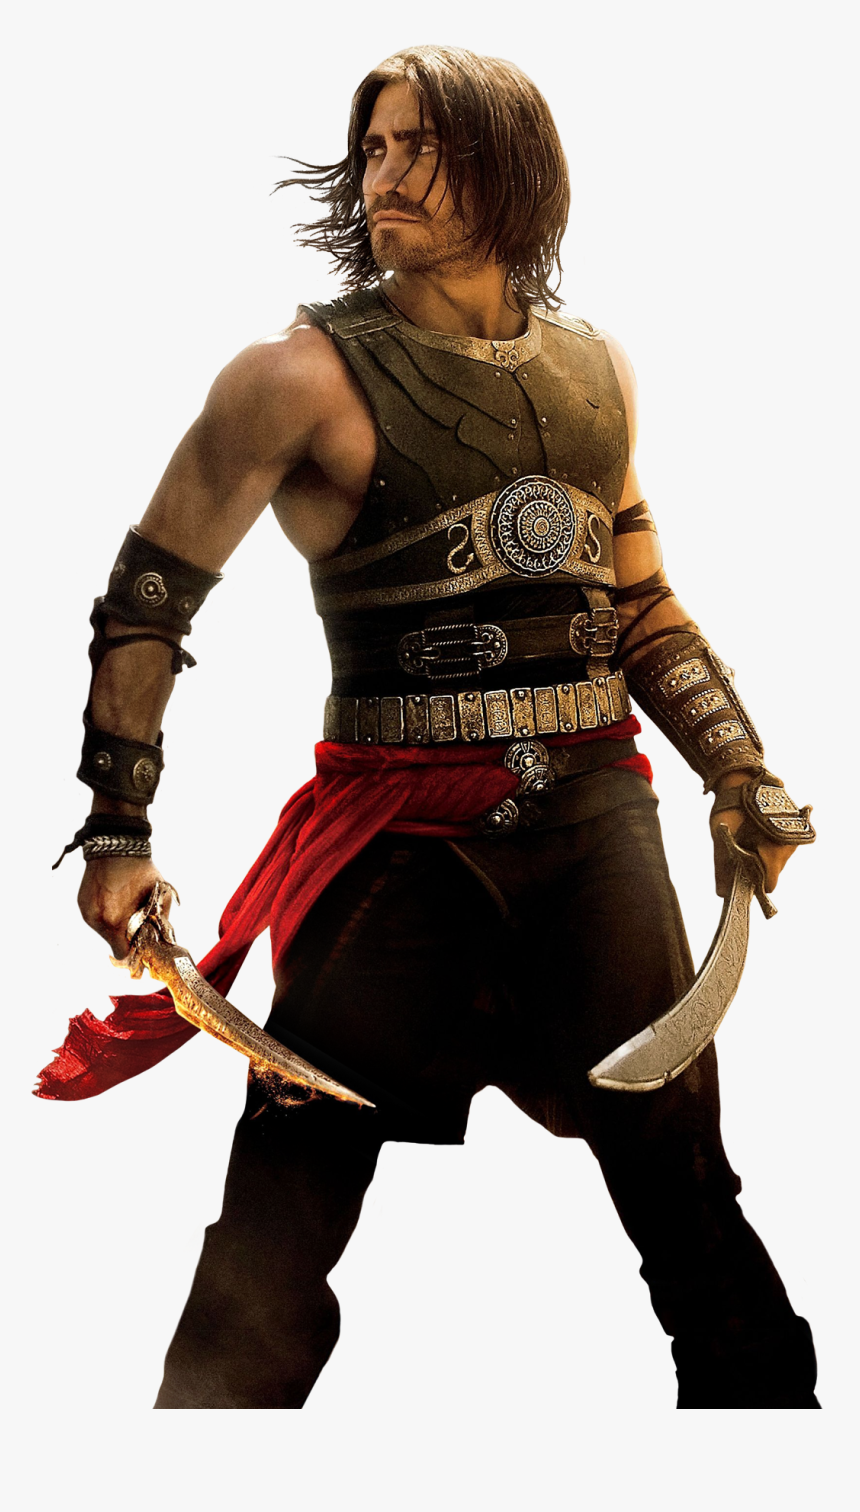 Prince Of Persia The Sands Of Time Hd Png Download Kindpng